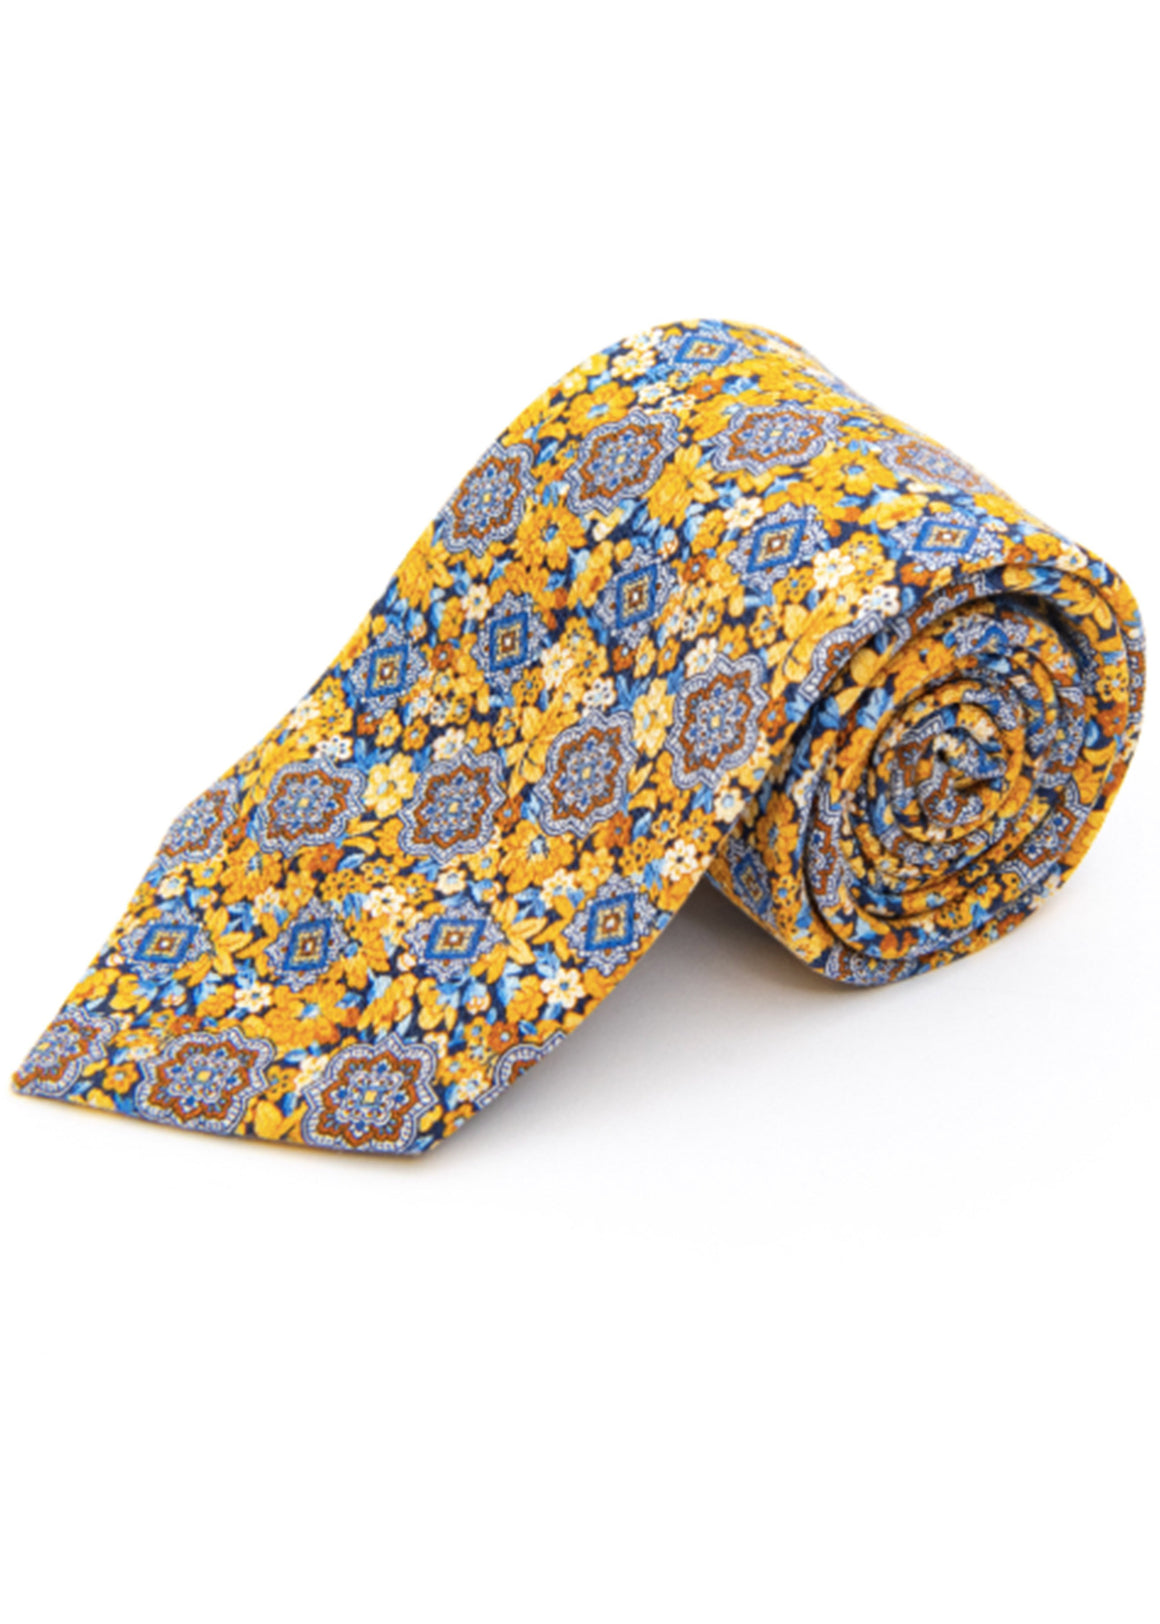 Edward Medallion On Floral Silk Tie | Harvest Gold